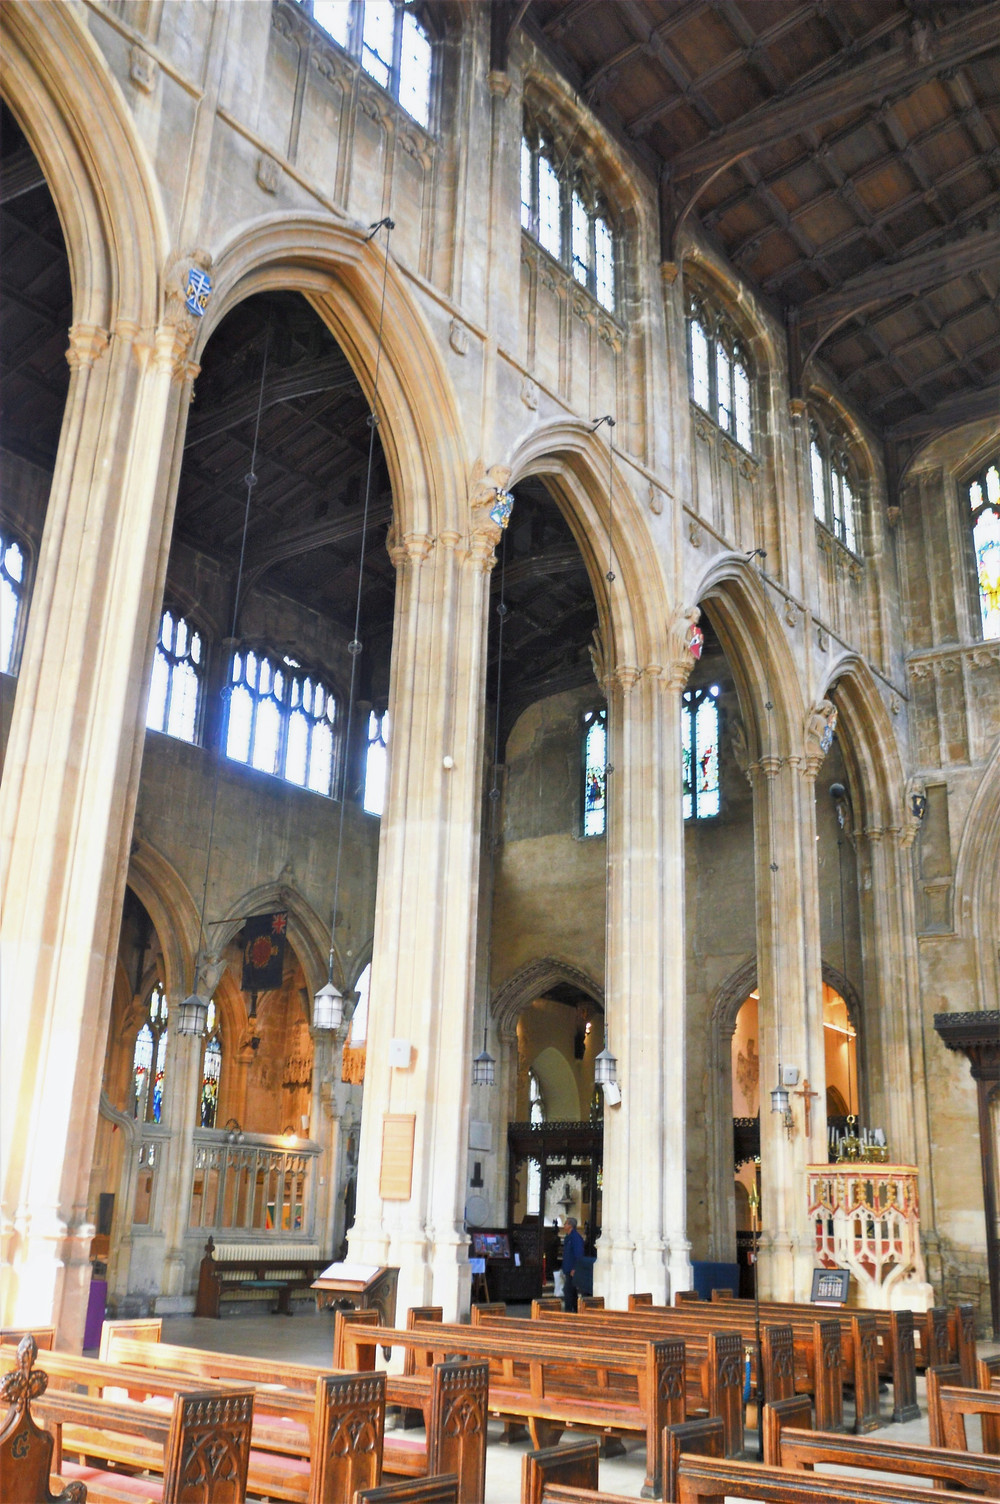 The nave of Cathedral of the Cotswolds, St. John the Baptist in Cirencester of the Cotswolds